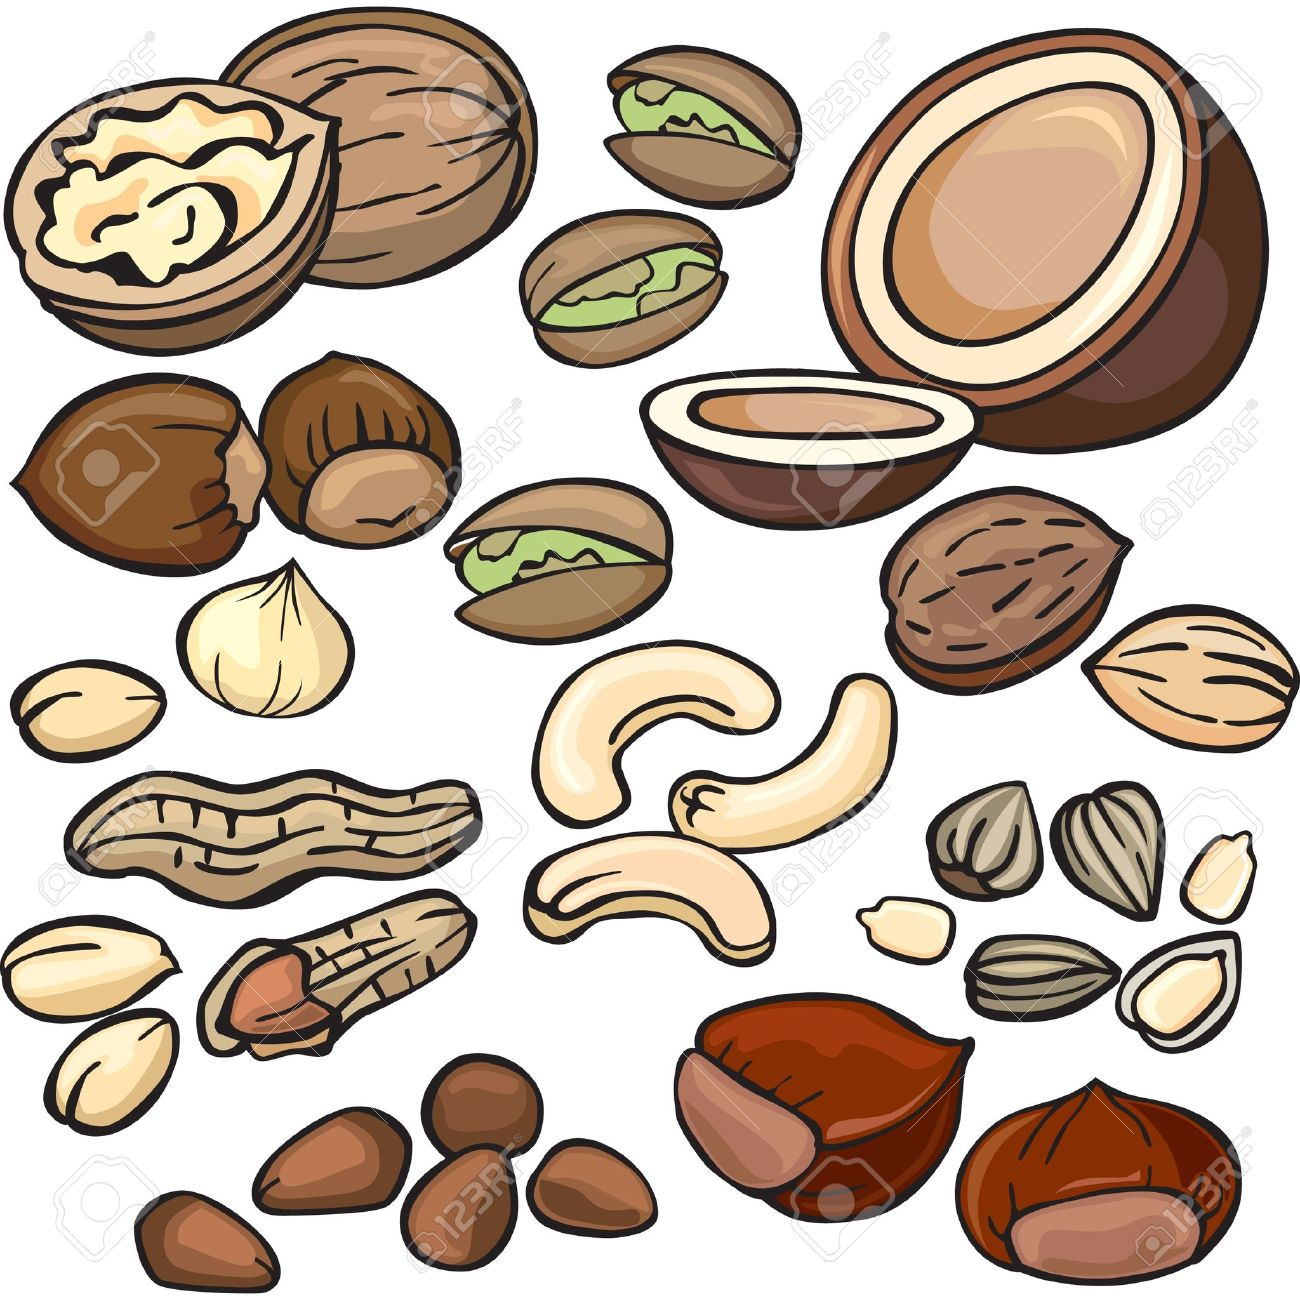 Nuts clipart 2 » Clipart Station.